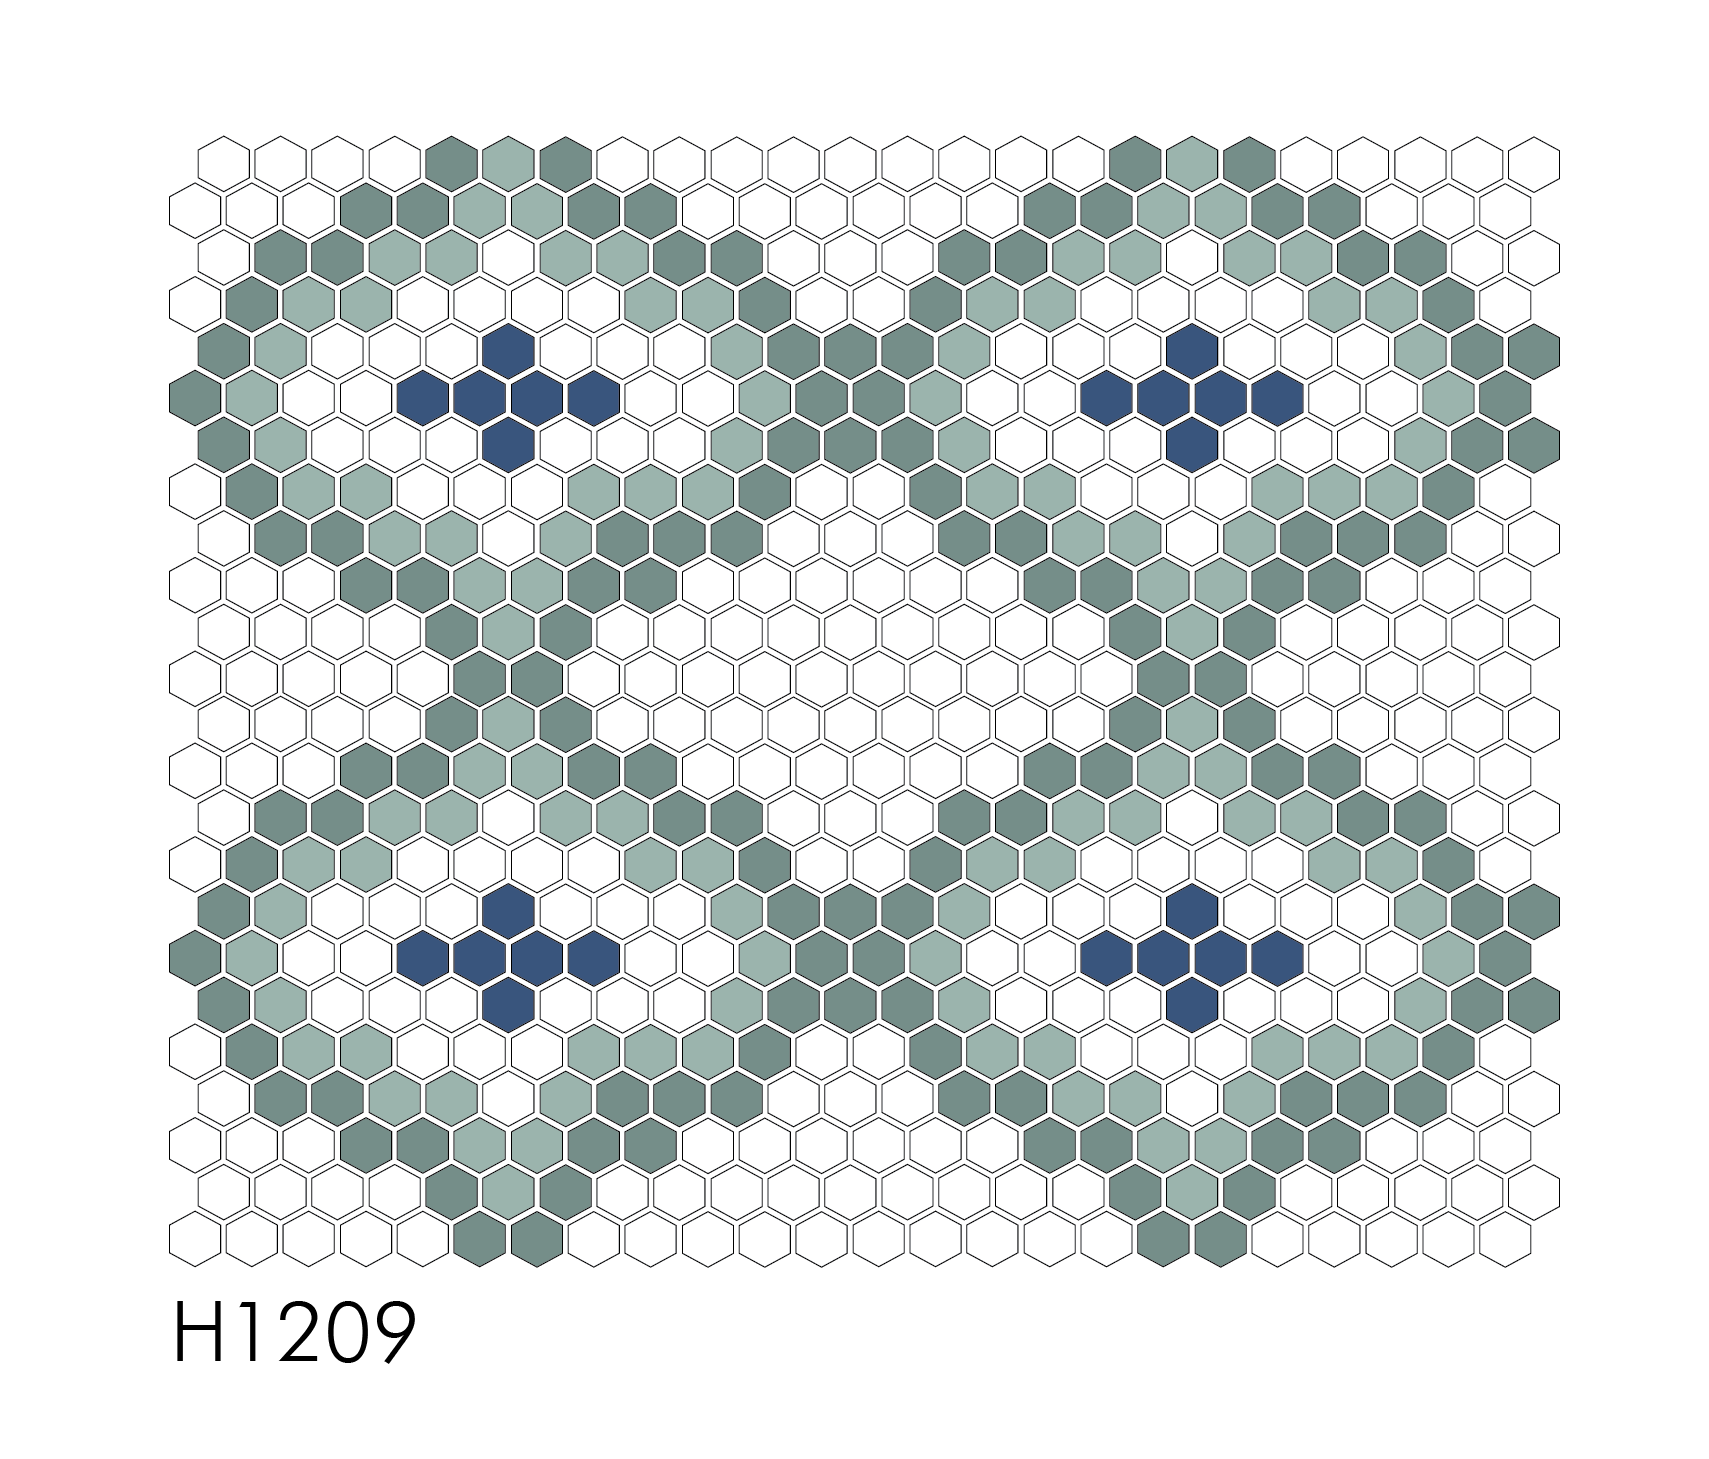 "H1209 1"" Hexagon Mosaic"